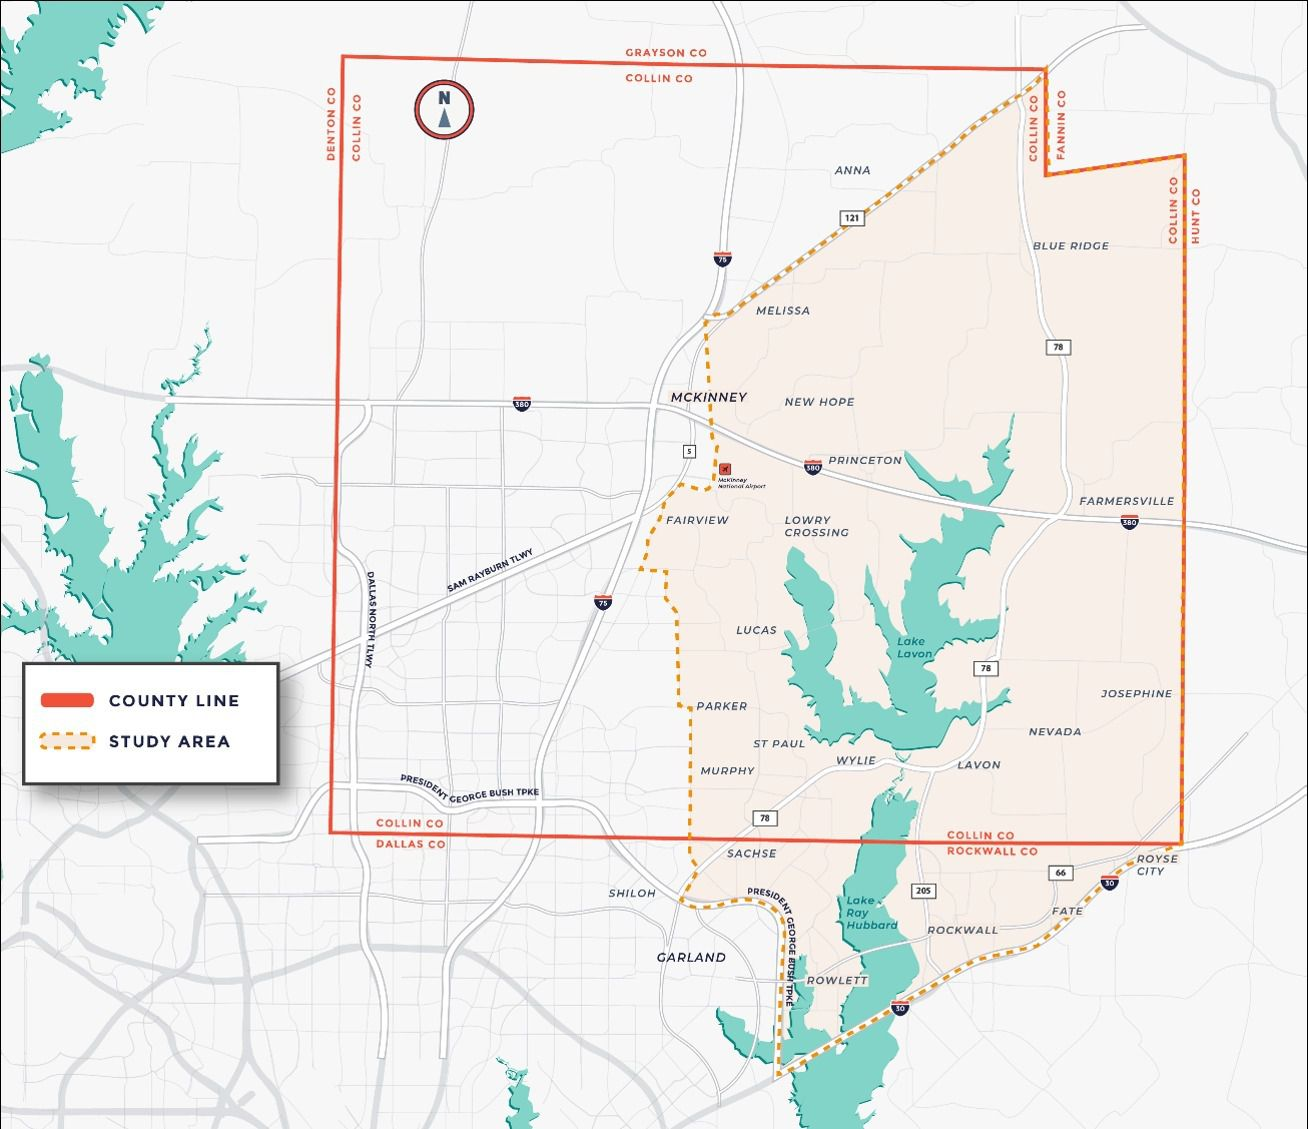 The Future Mobility Study is gathering public input on transportation in the east and southeast portions of Collin County.